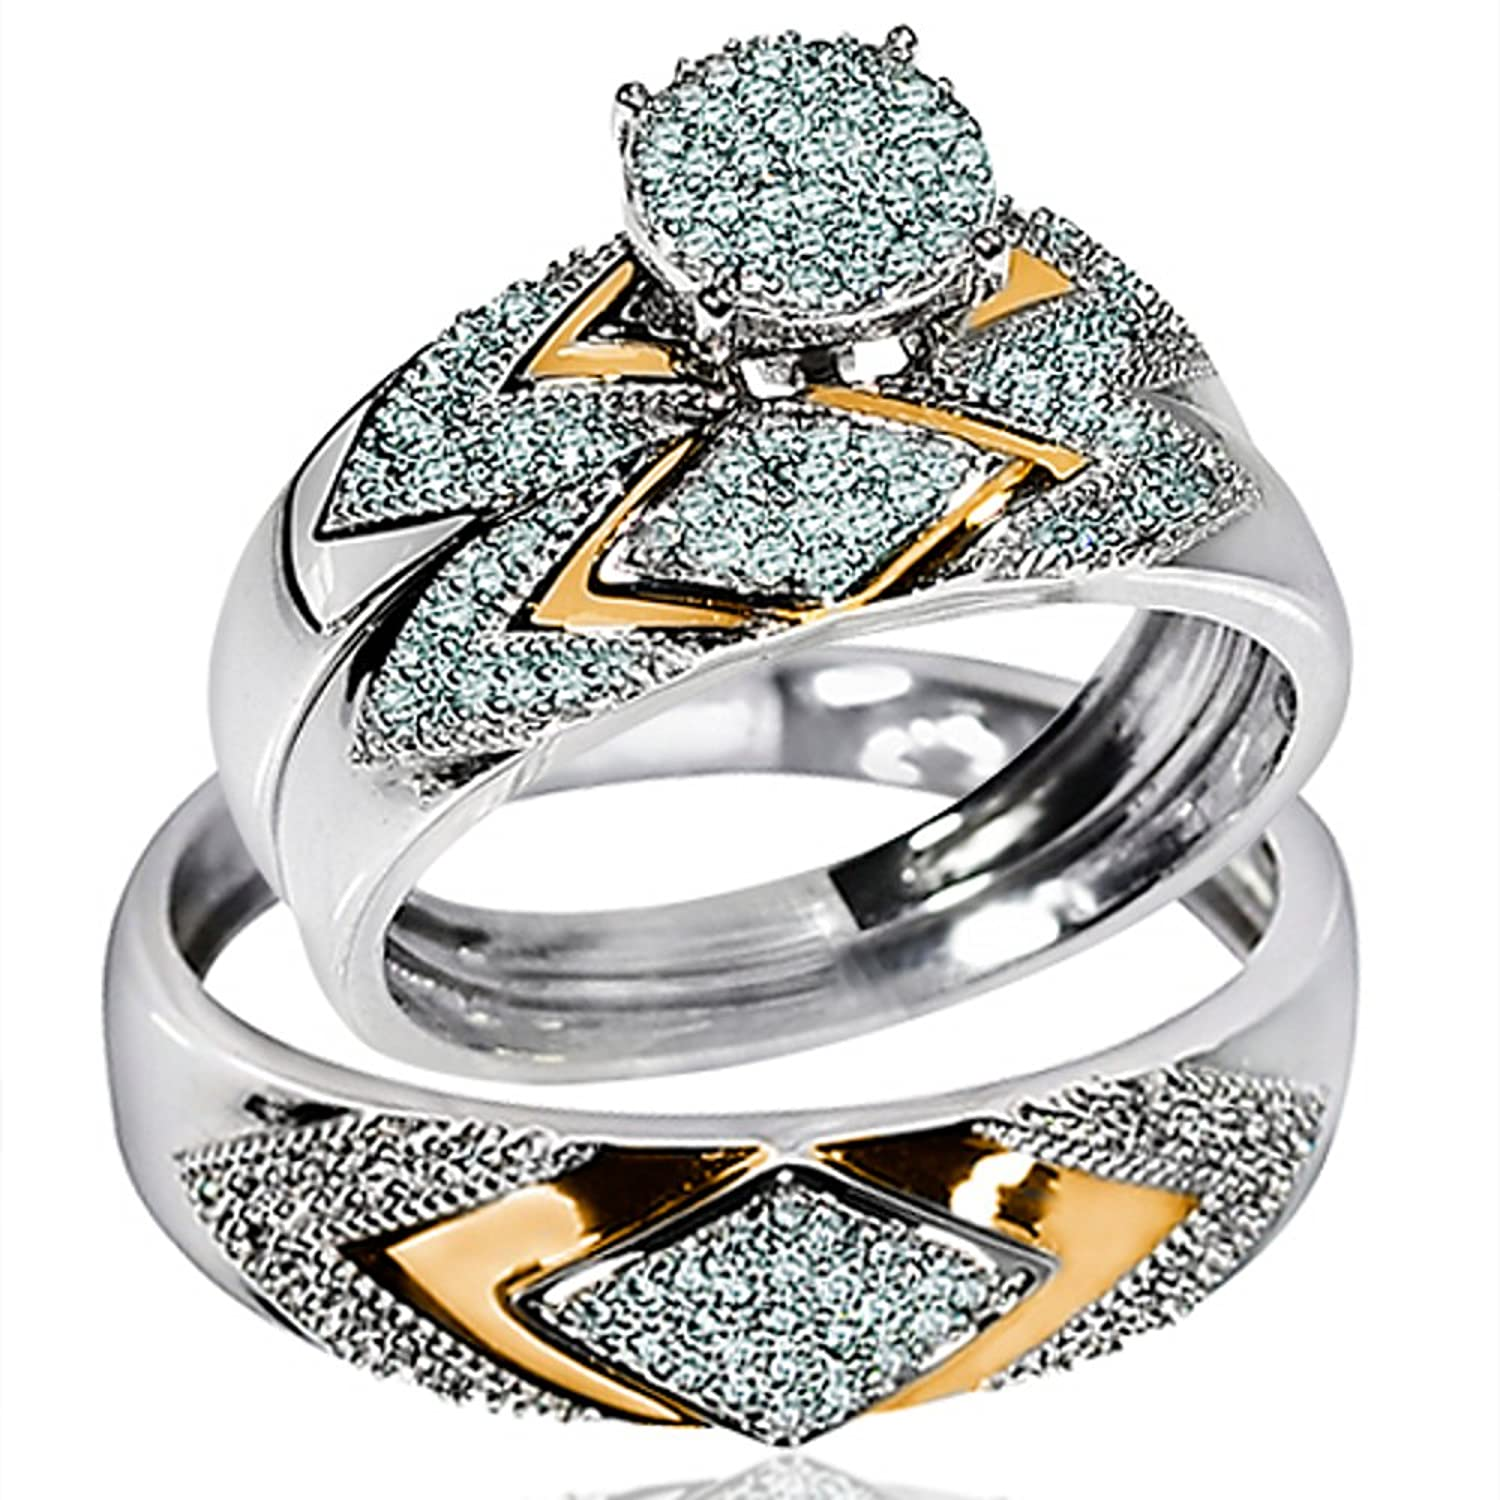 com rings bands platinum sets walmart best wedding manworksdesign of band